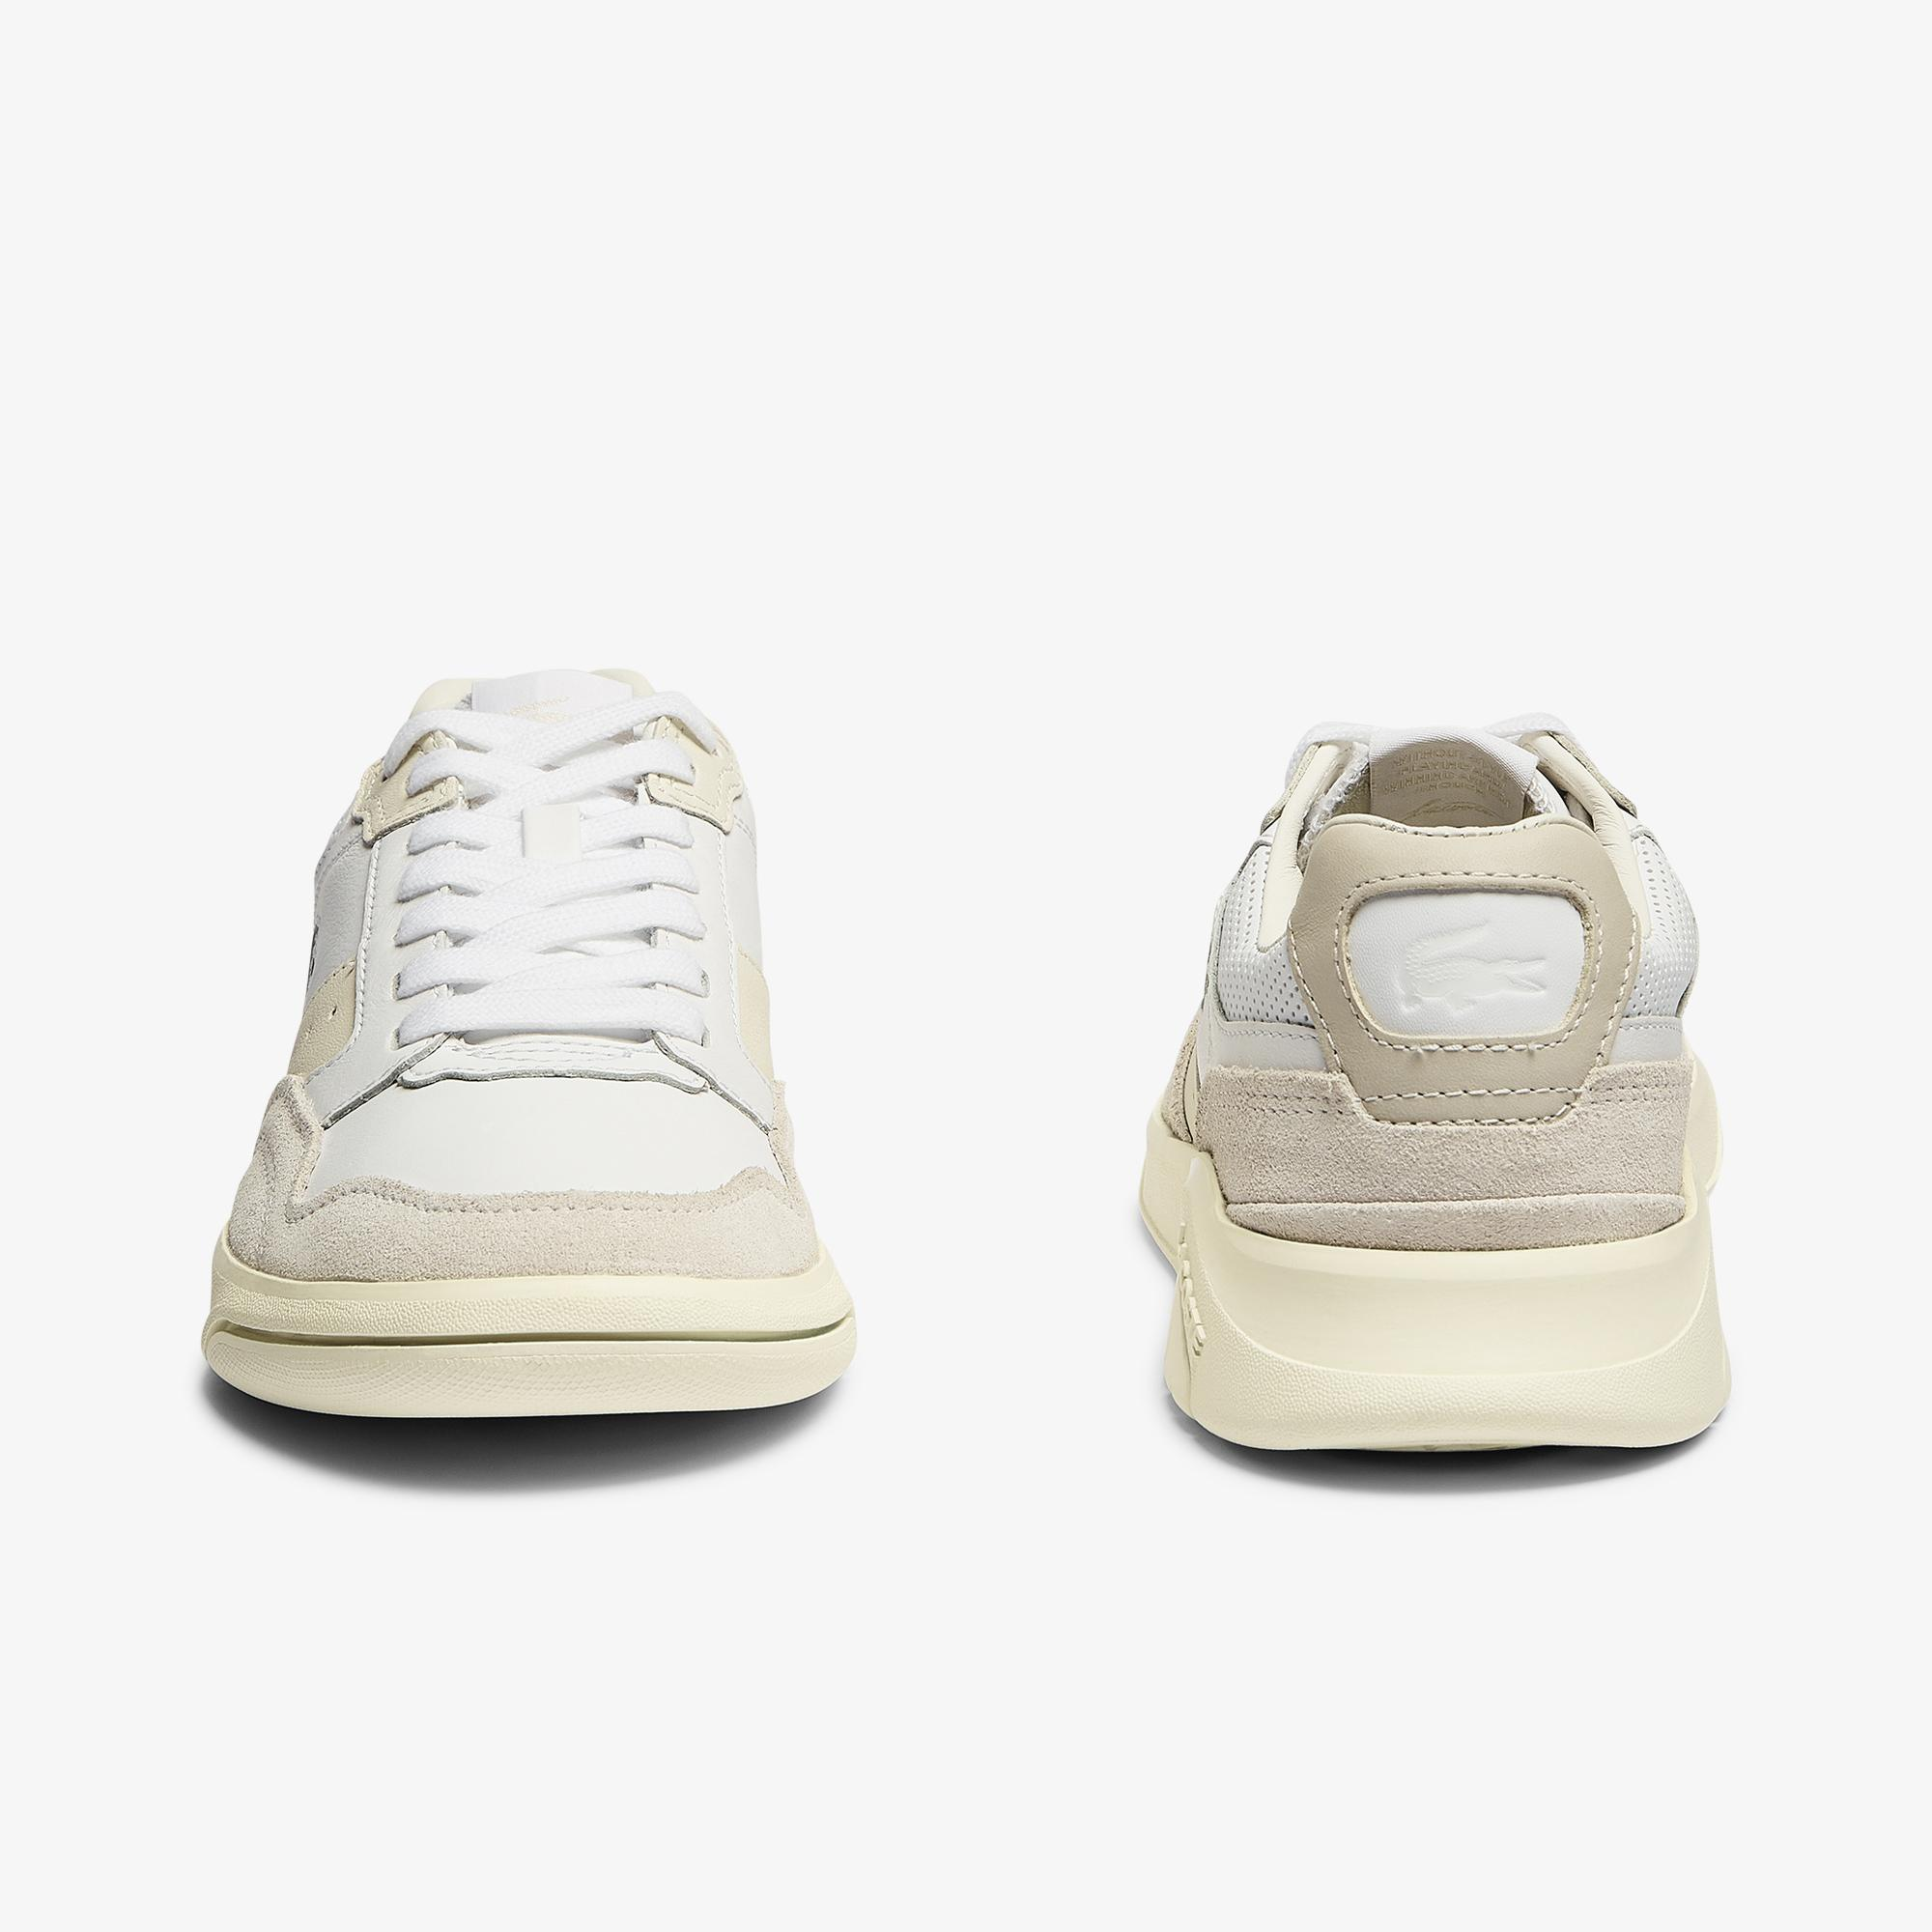 Lacoste Women's Game Advance Luxe Leather and Suede Trainers